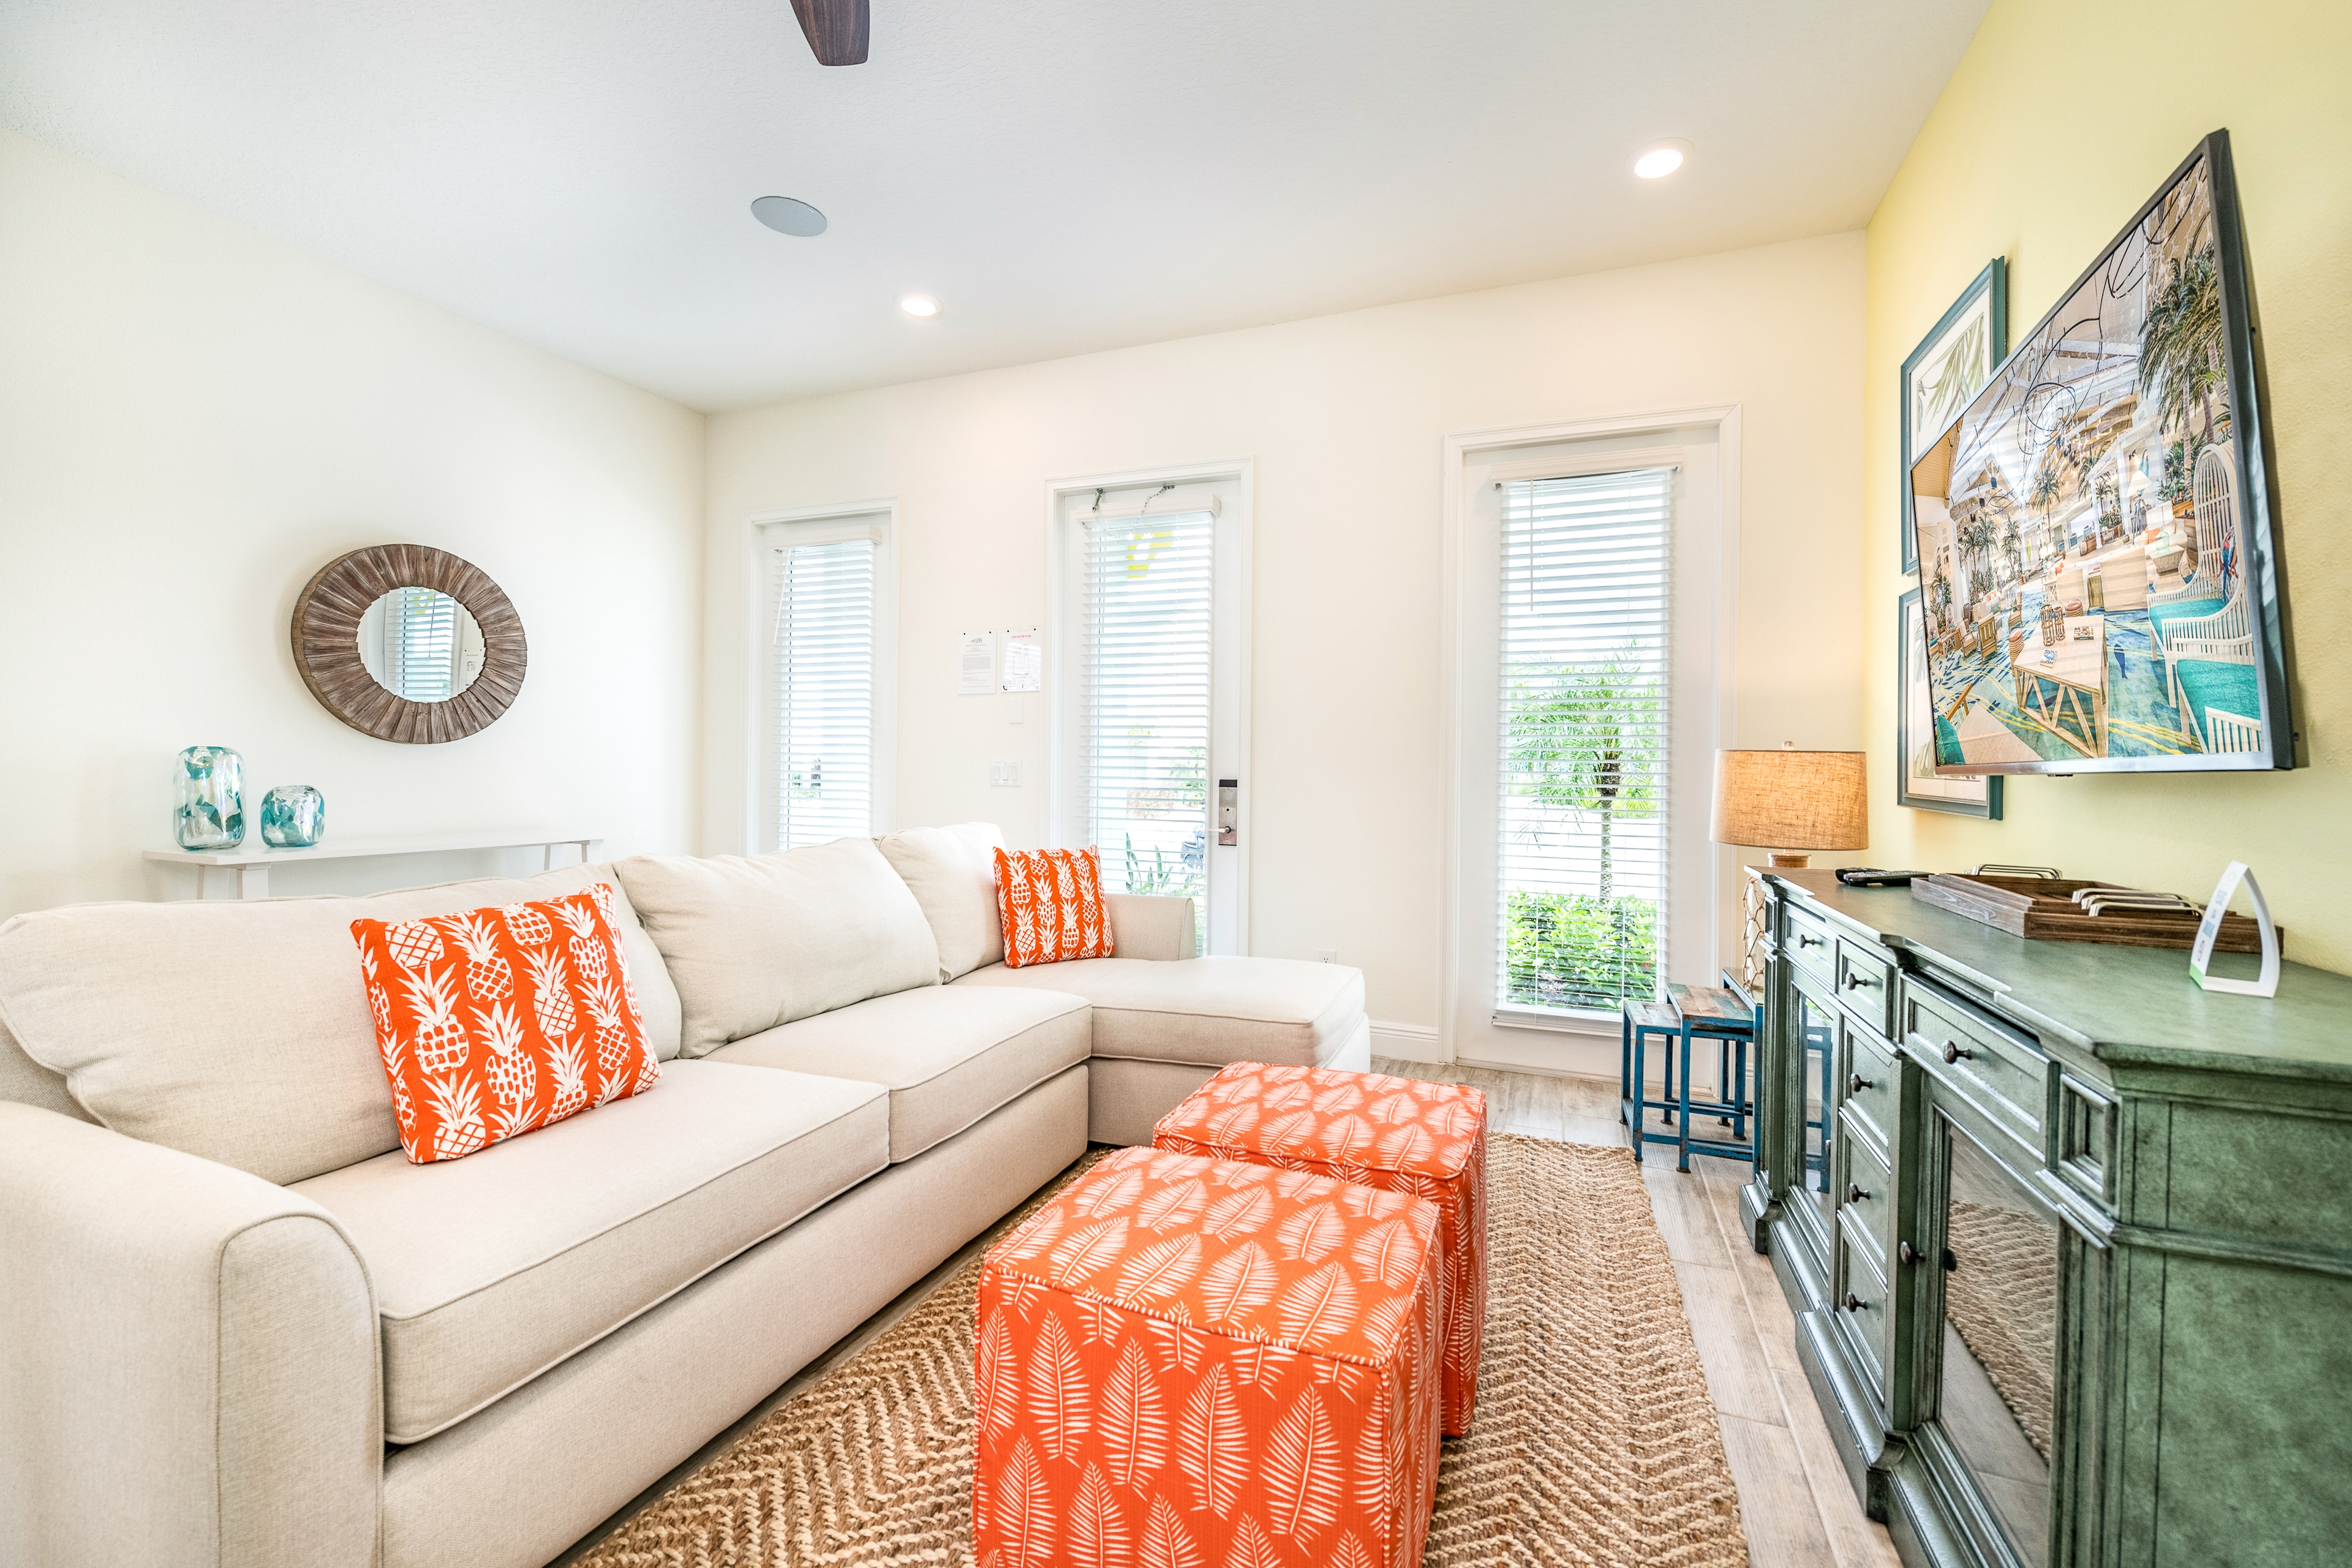 Property Image 2 - Bright and Sunny Cottage near Disney w/ Hotel Amenities